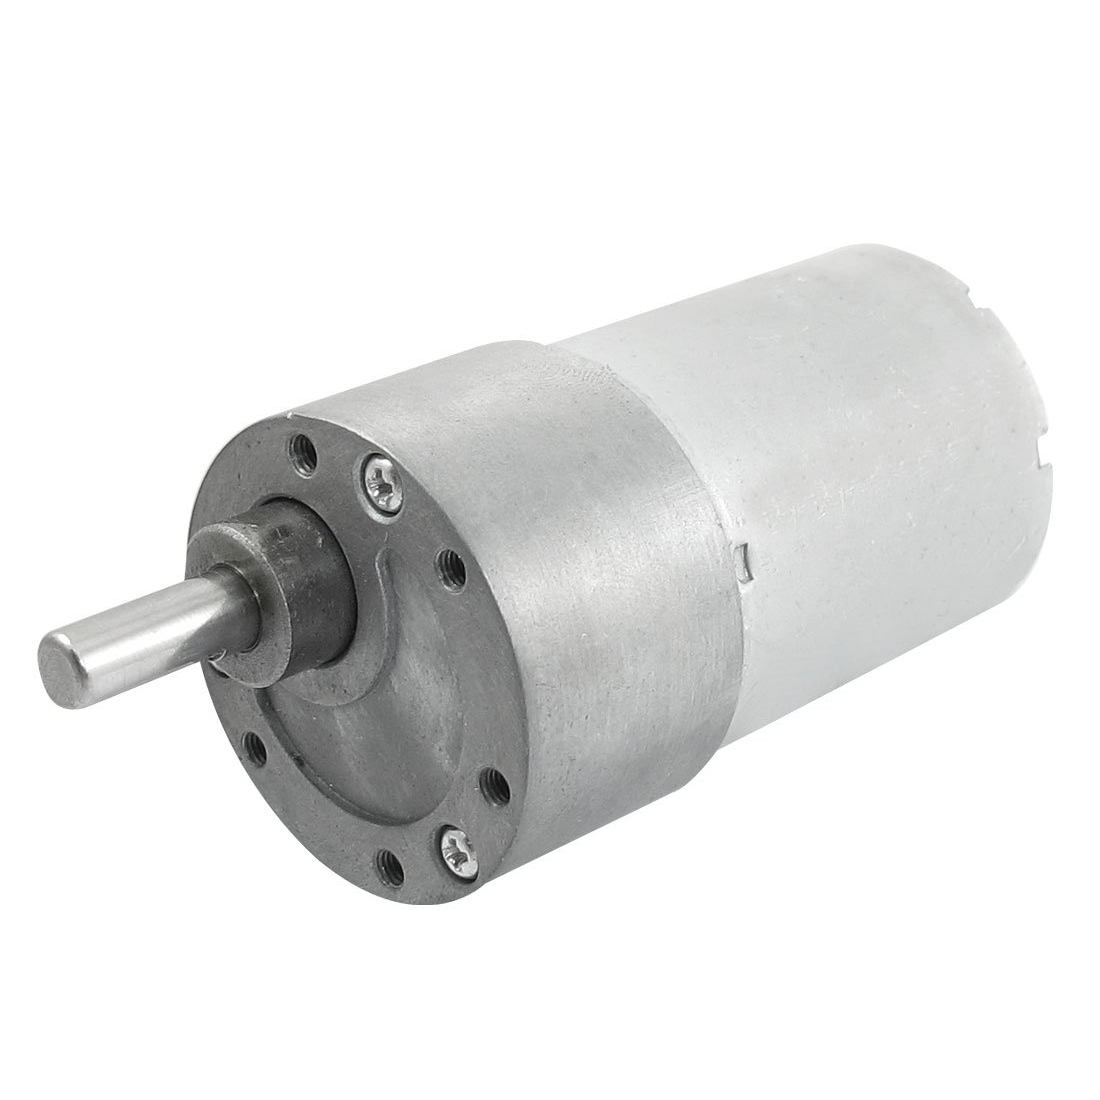 цена на WSFS Hot Sale 300 RPM DC 12V 2.4W Torque Gear Box Electric Speed Reduce Motor